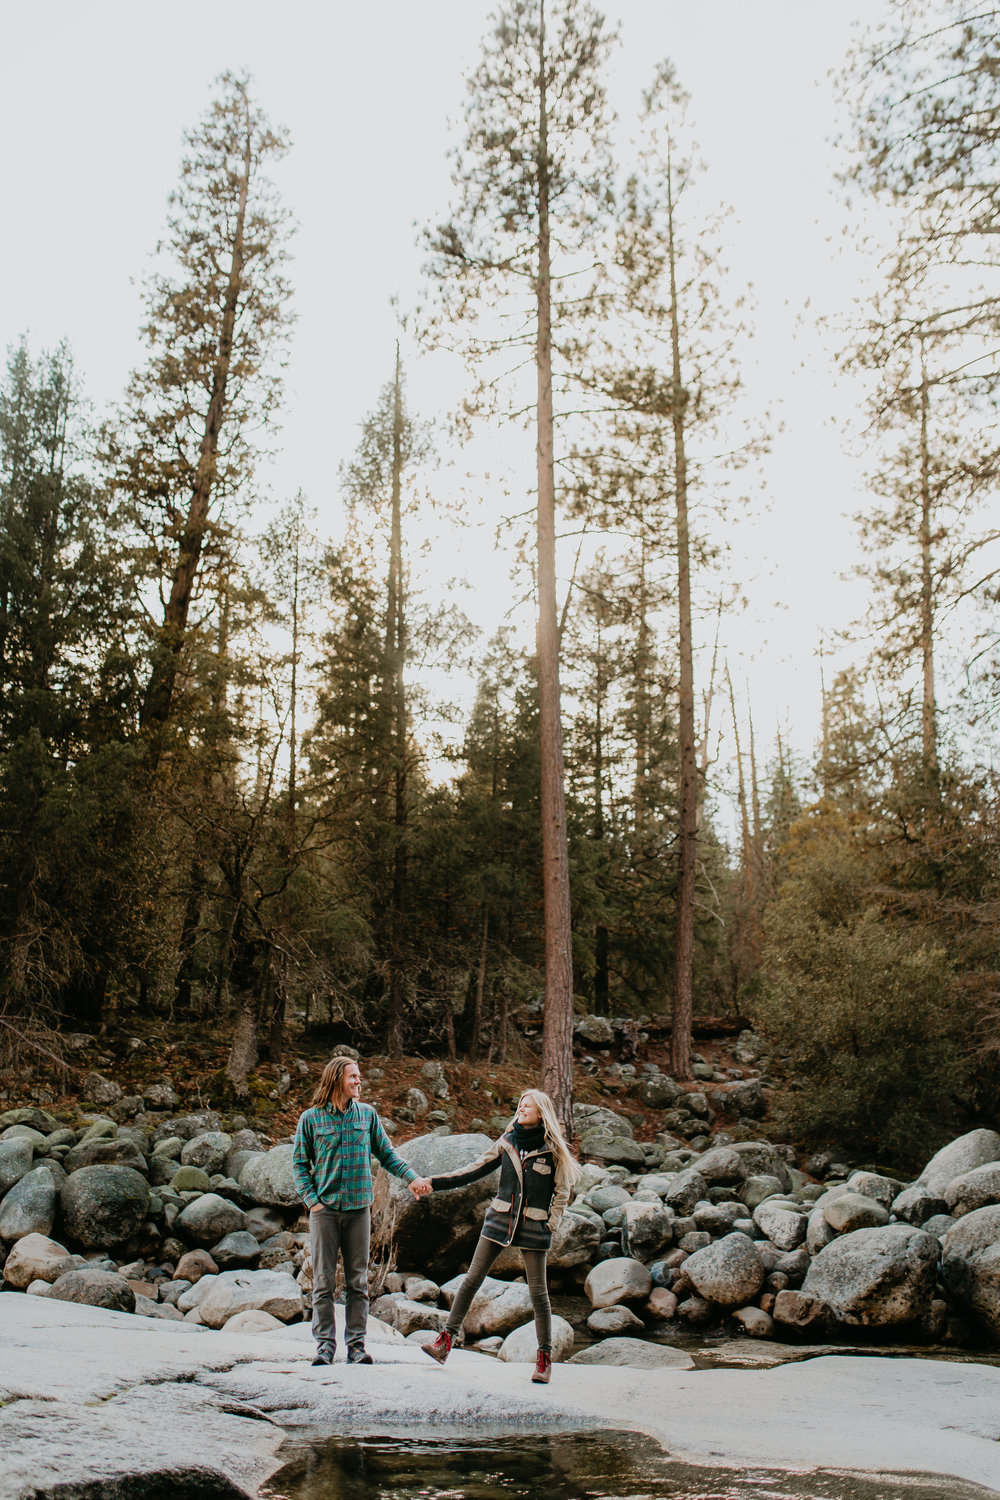 nicole-daacke-photography-yosemite-riverside-adventurous-engagement-photos-in-yosemite-national-park-elopement-photographer-weddings-travel-destination-wedding-eloping-elope-pine-forest-9.jpg